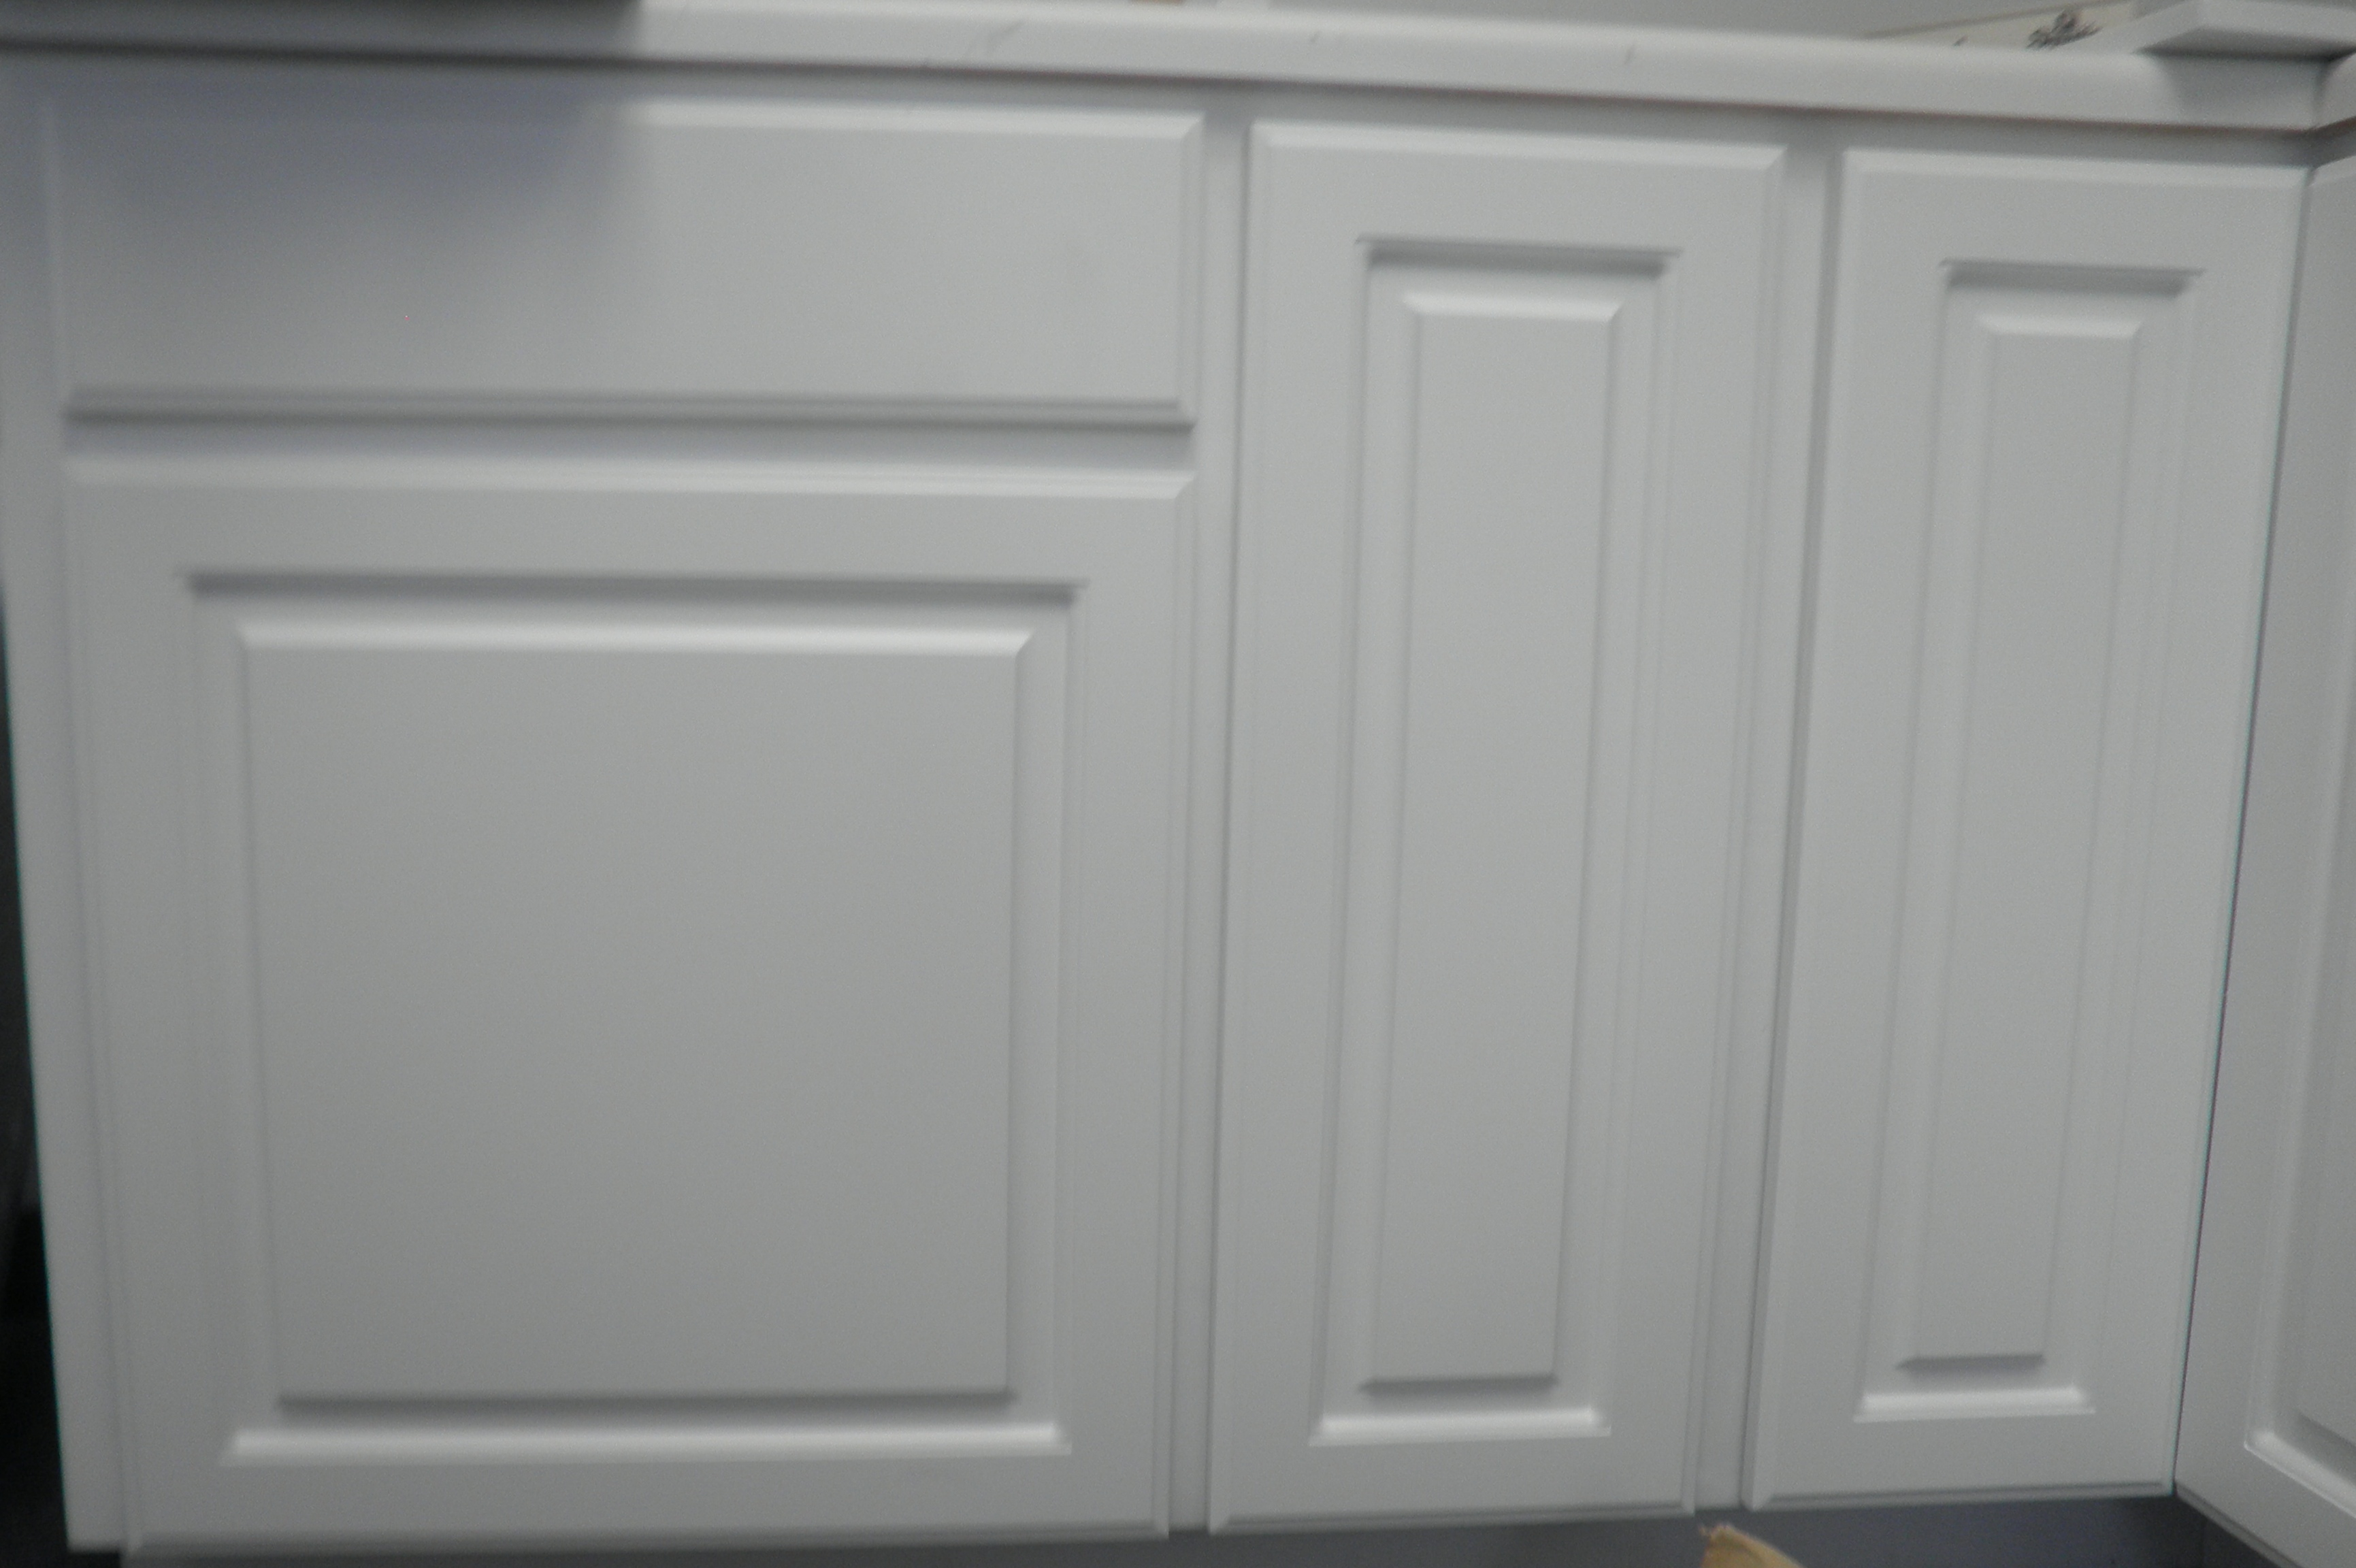 MDF Cabinet Doors | Carolina Blind & Shutter Inc.